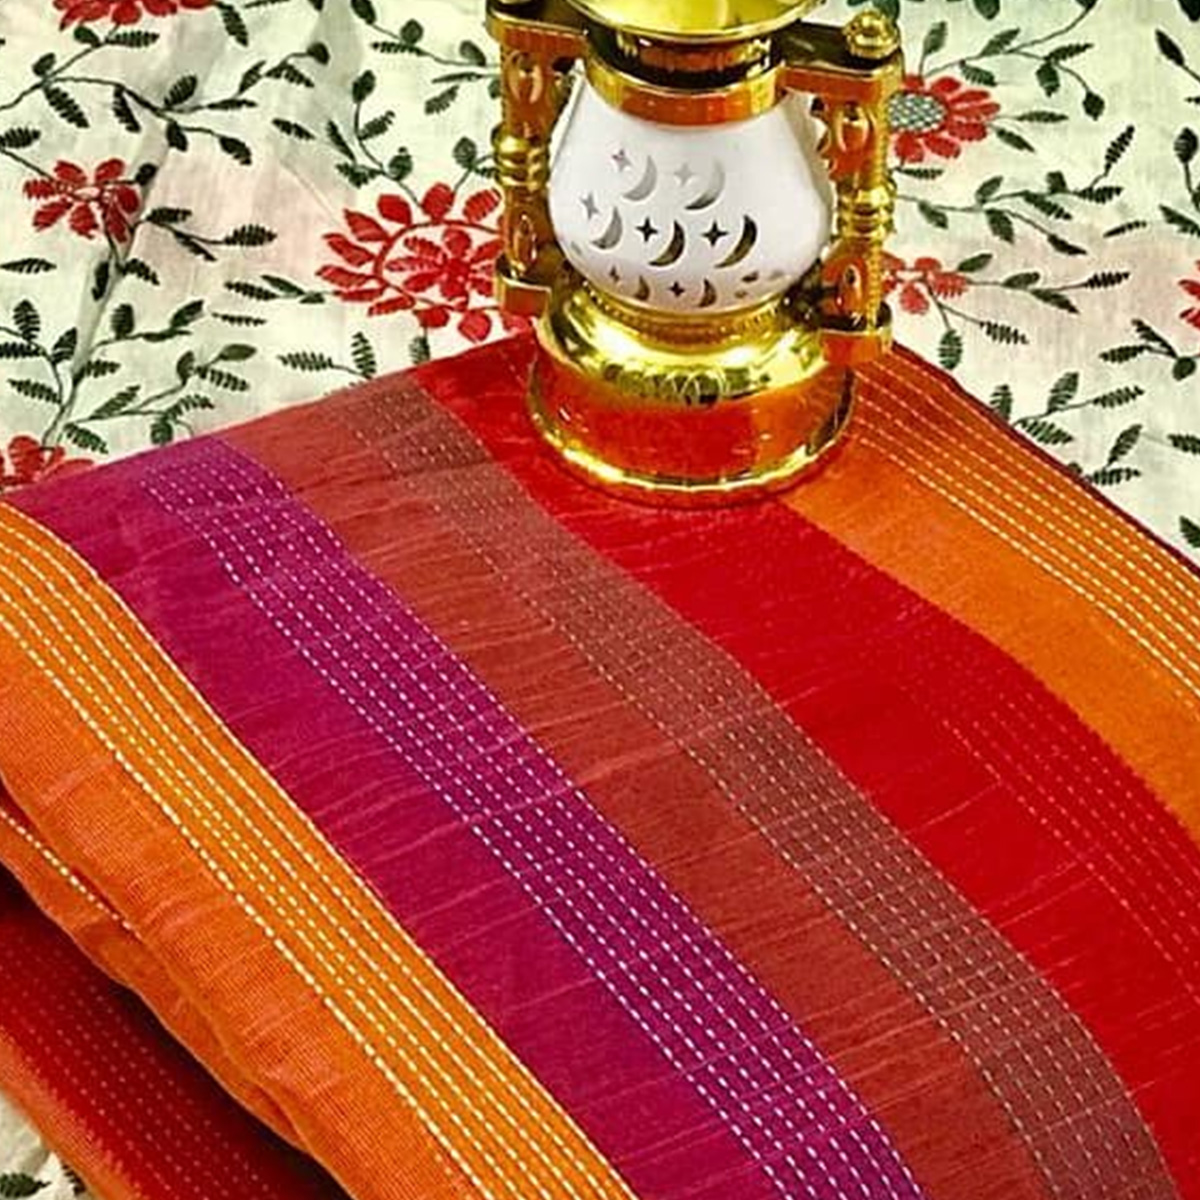 Prominent Orange - Multi Colored Partywear Embroidered Cotton Dress Material